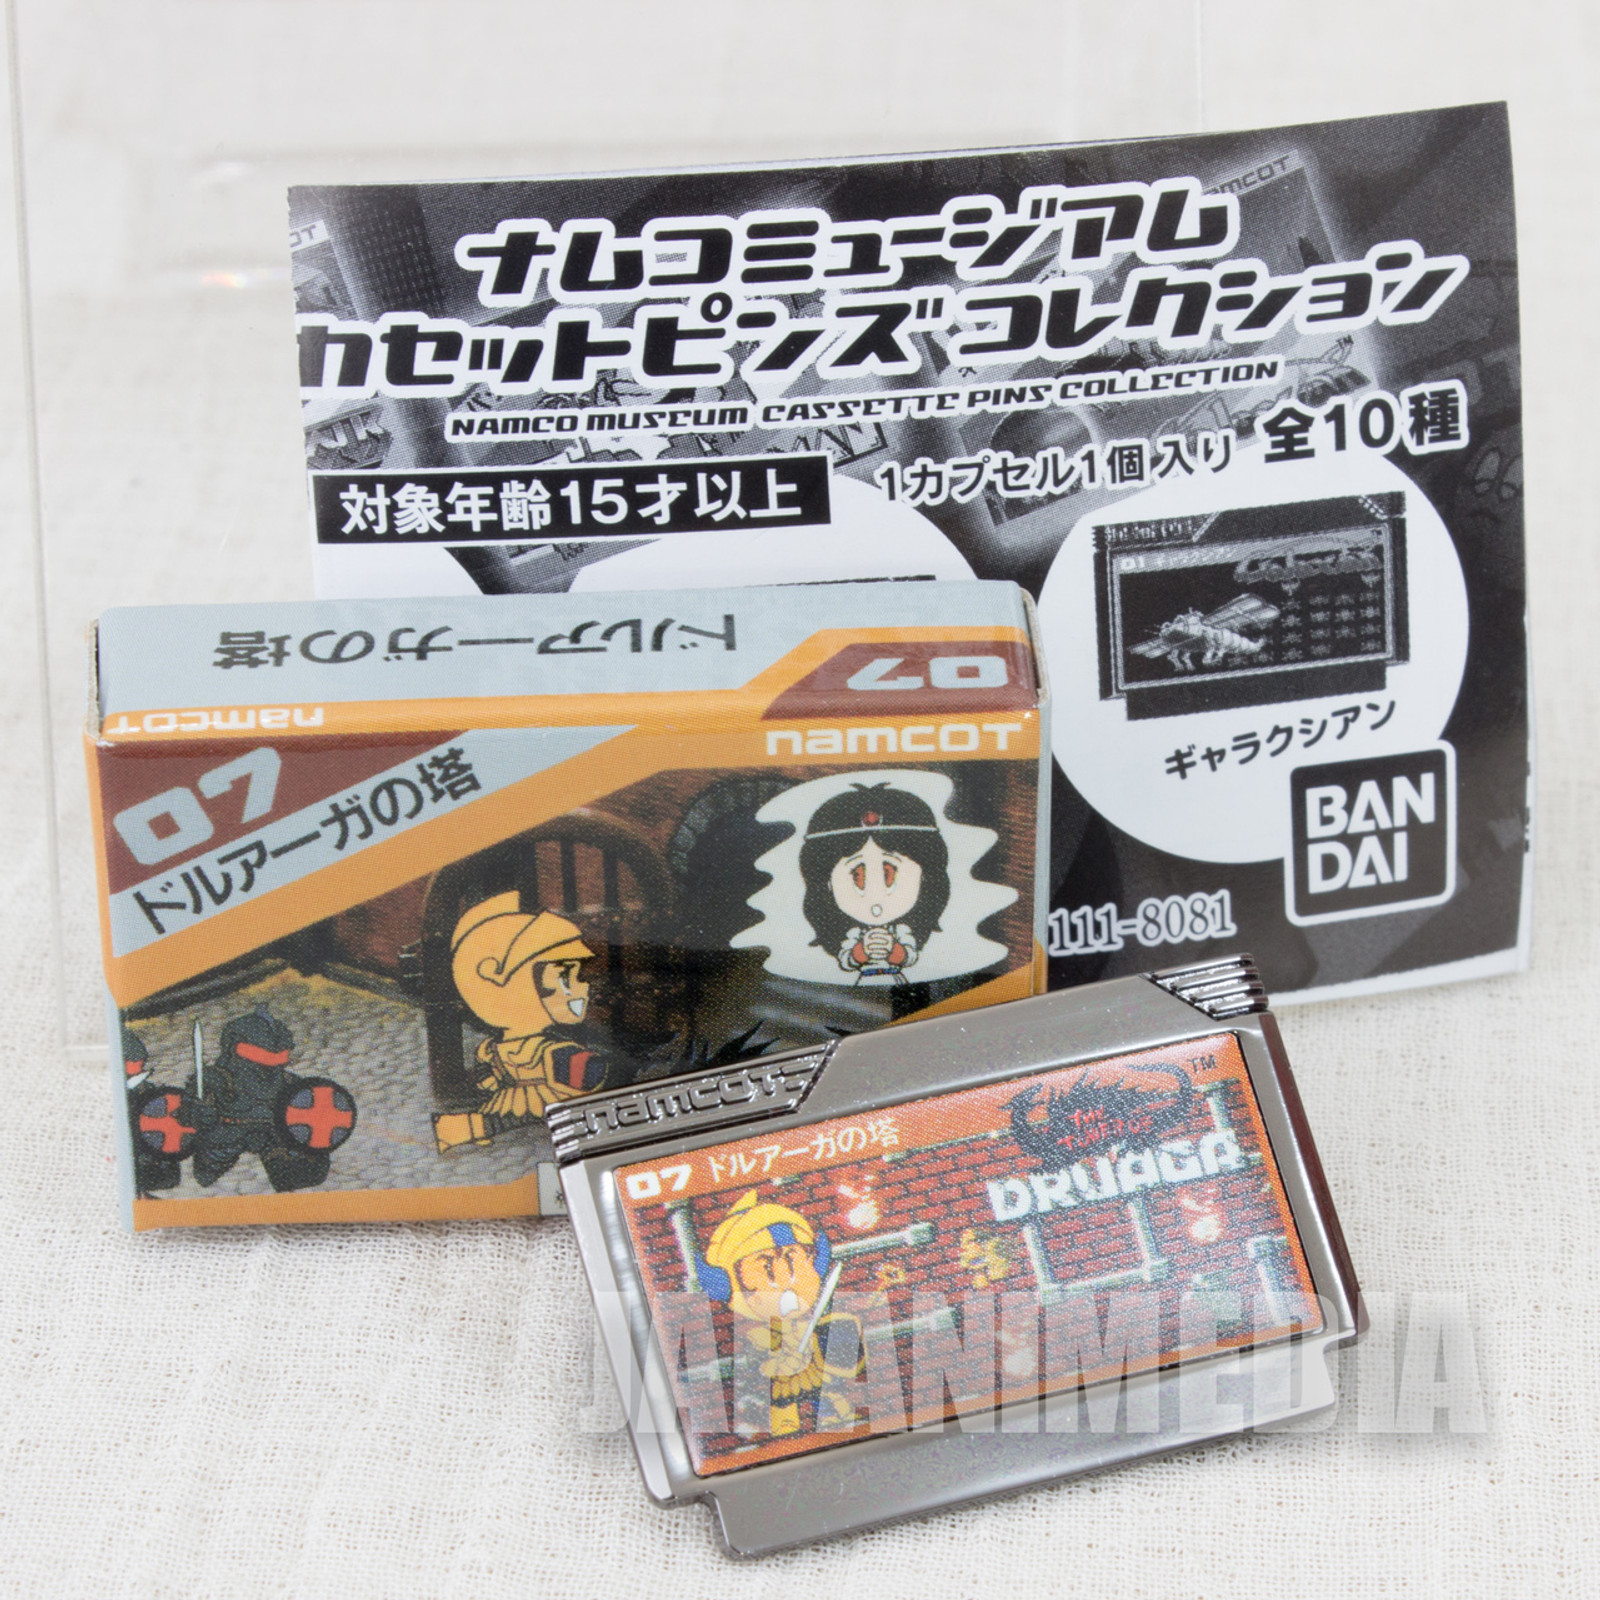 Tower of Druaga Namco Museum Cassette Pins Collection BANDAI JAPAN FAMICOM NEC